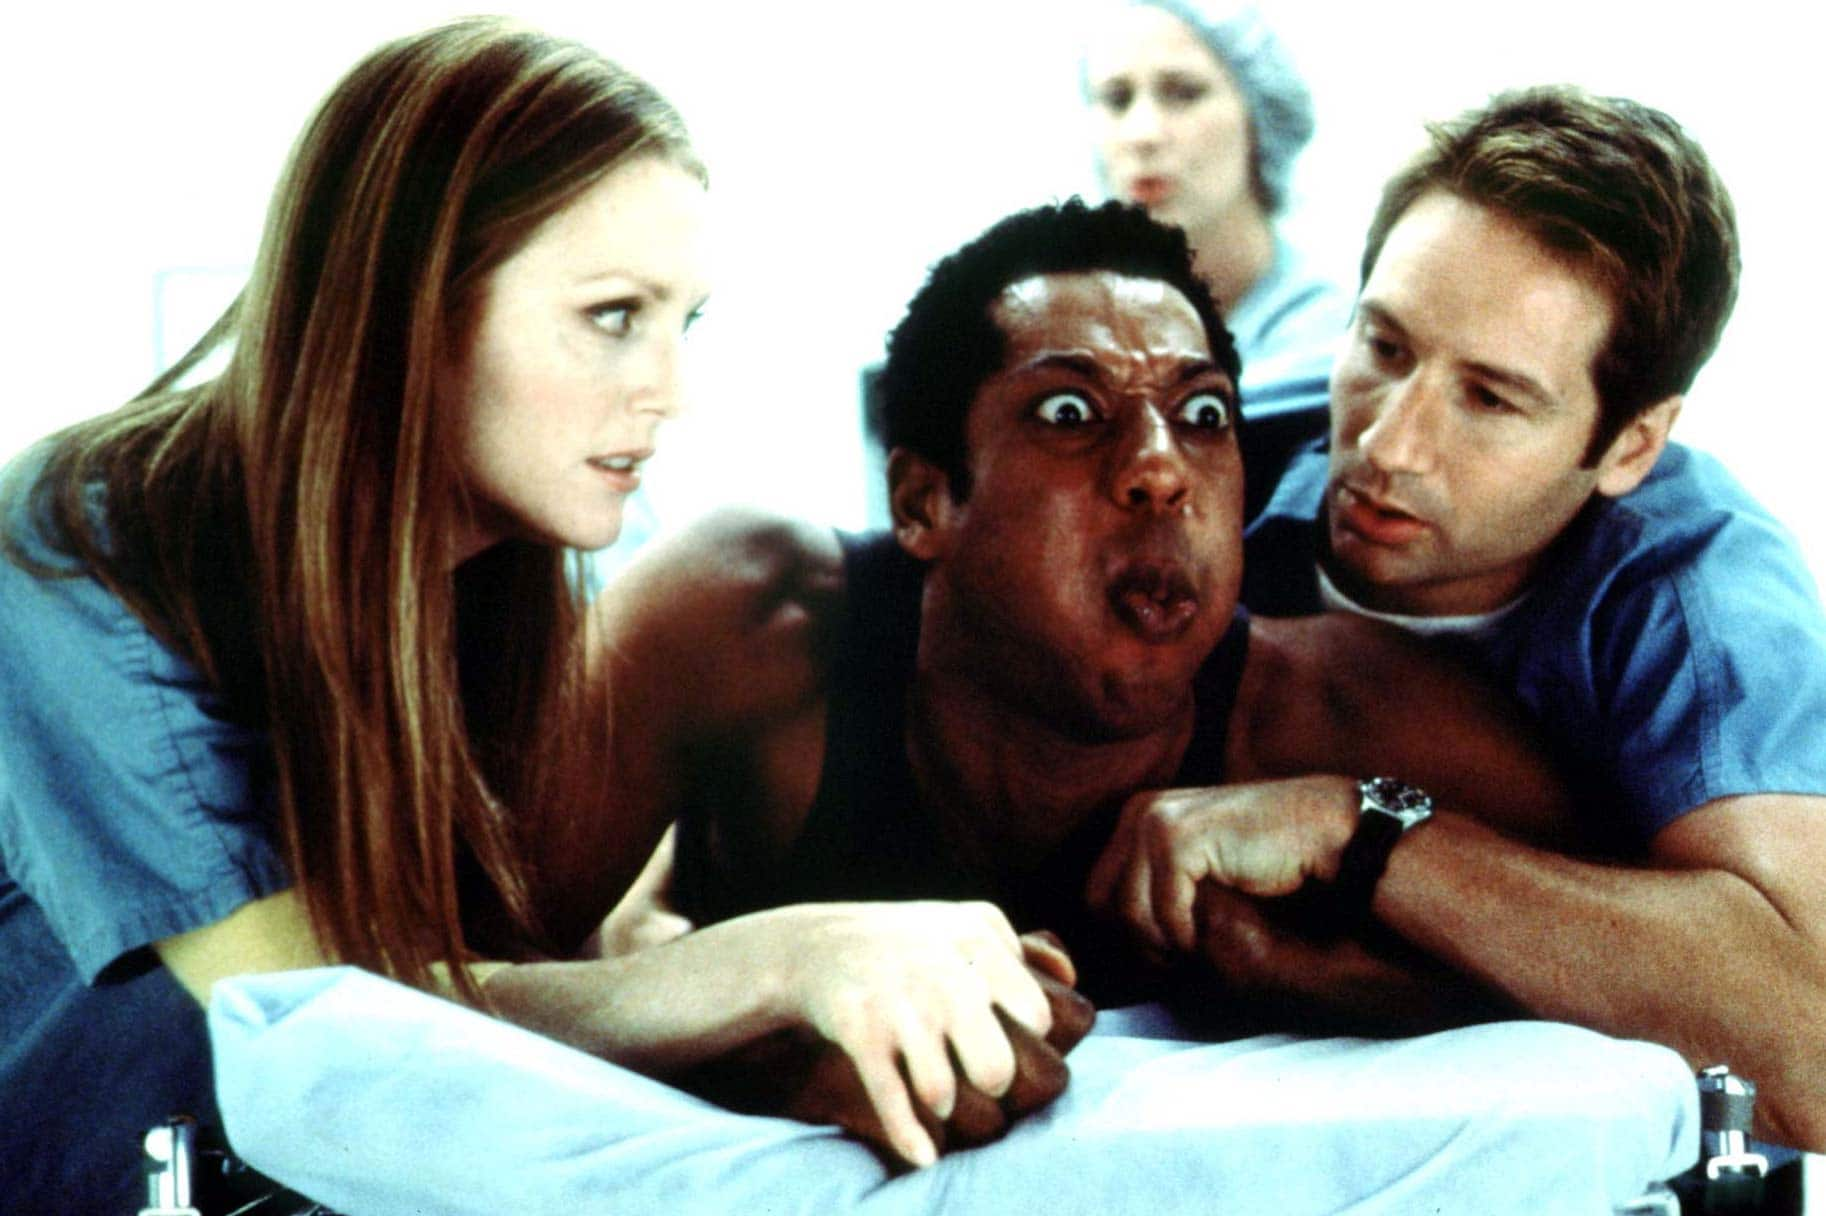 David Duchovny, Julianne Moore, and Orlando Jones filmed Evolution in California and Page, Arizona